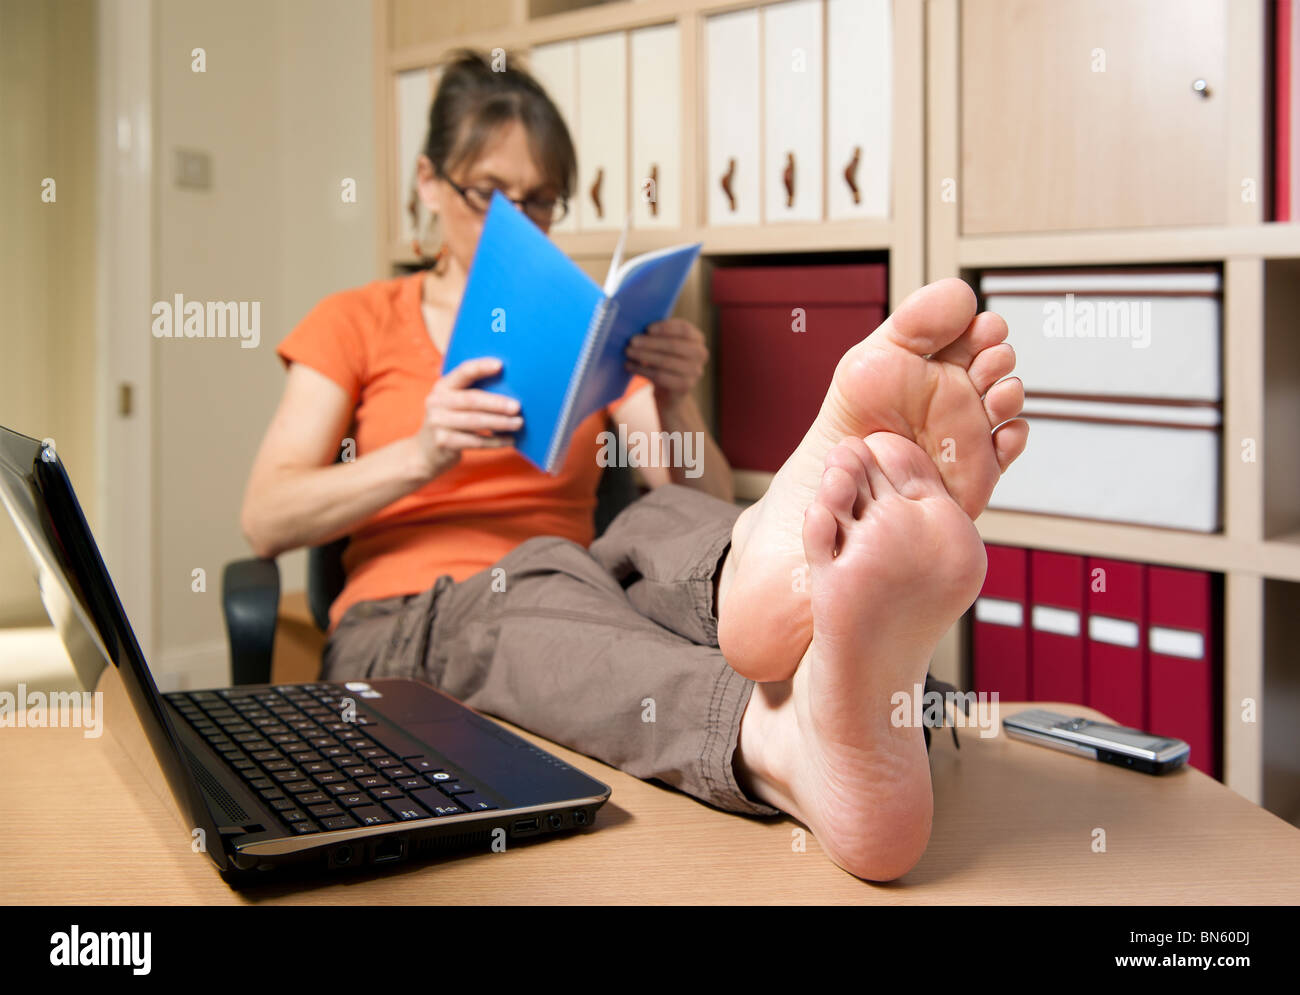 Bare feet on desk